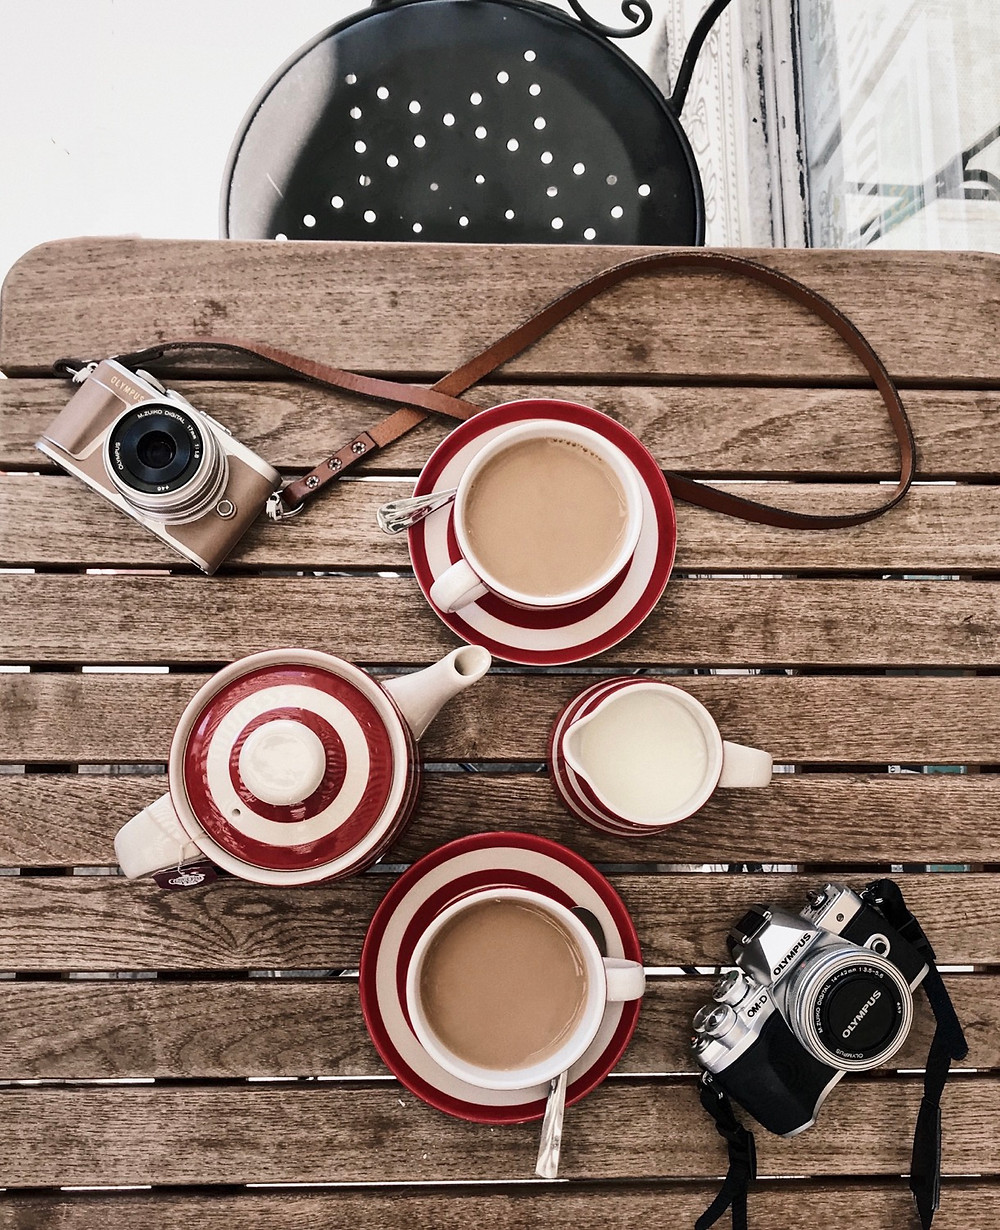 Penn and E-M10 Cameras Biscuteers Notting Hill Stripe tea set